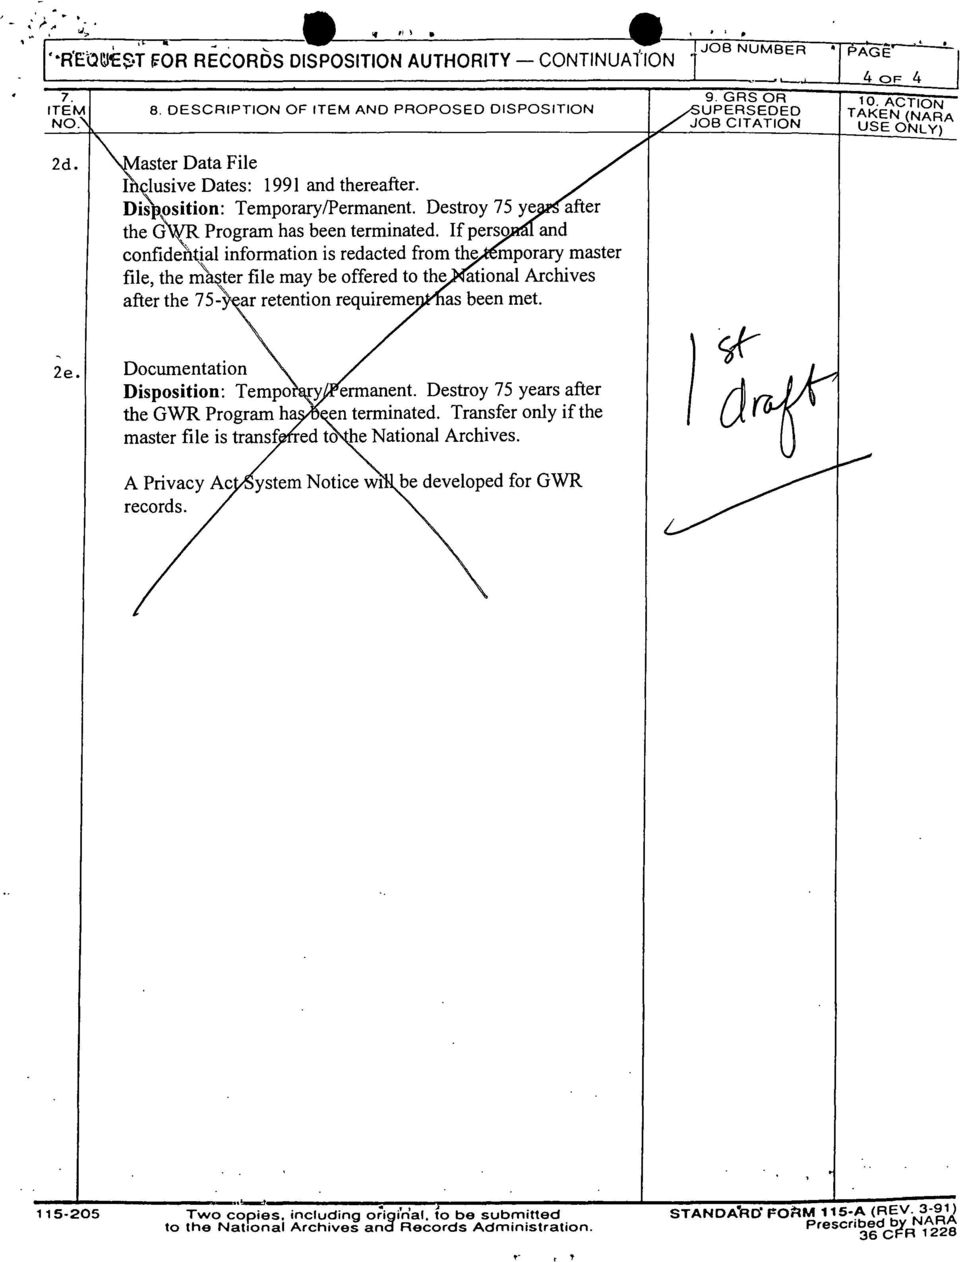 "If perso and confidential information is redacted from the mporary master file, the rri' ter file may be offered to the ational Archives after the 75- "" ar retention requireme as been met. 2e."